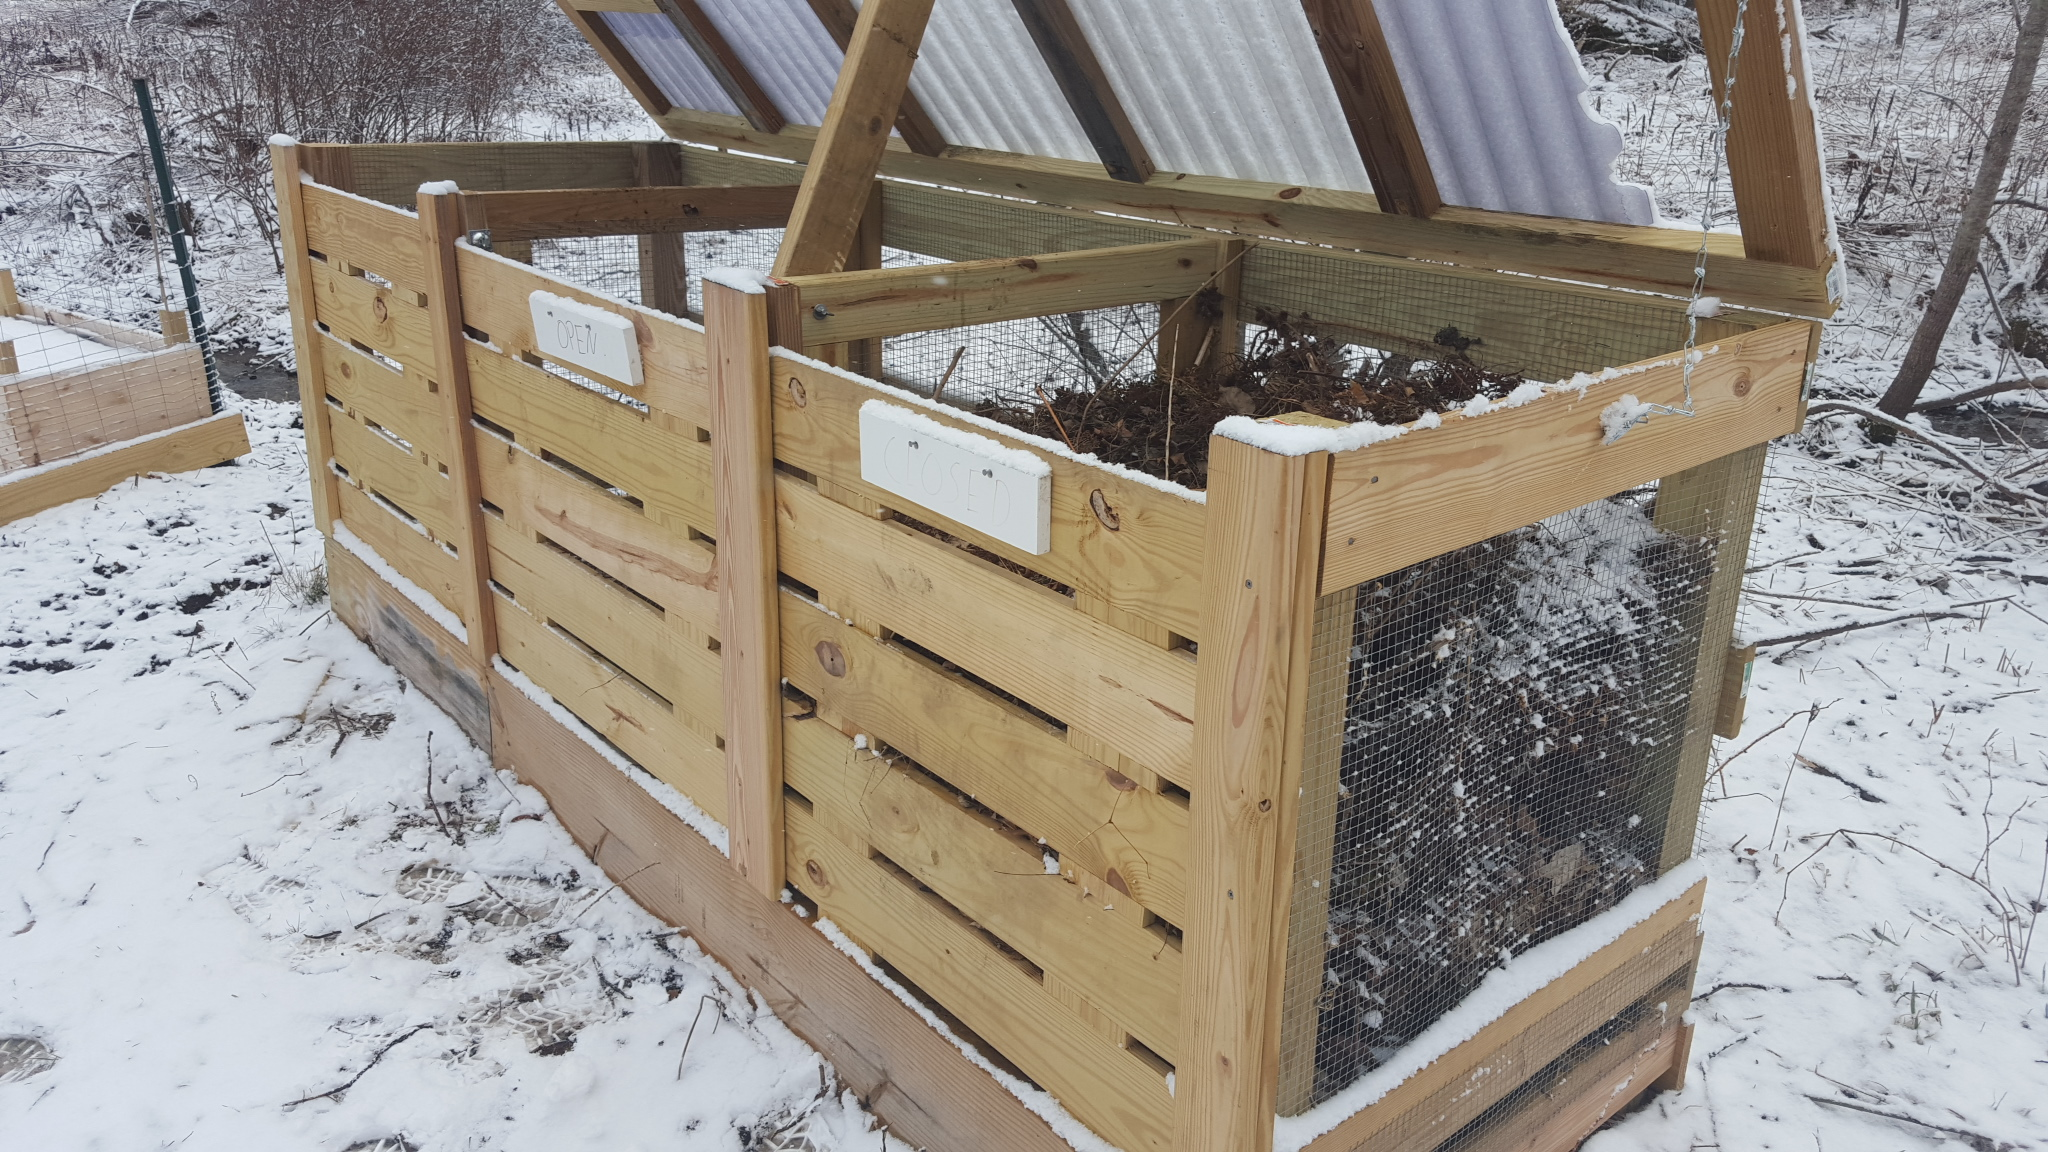 Wire mesh protects the pile from furry guests and visitors who might want a midnight snack. The front slats slide out from the top, so we can turn the piles and spread it on the garden.